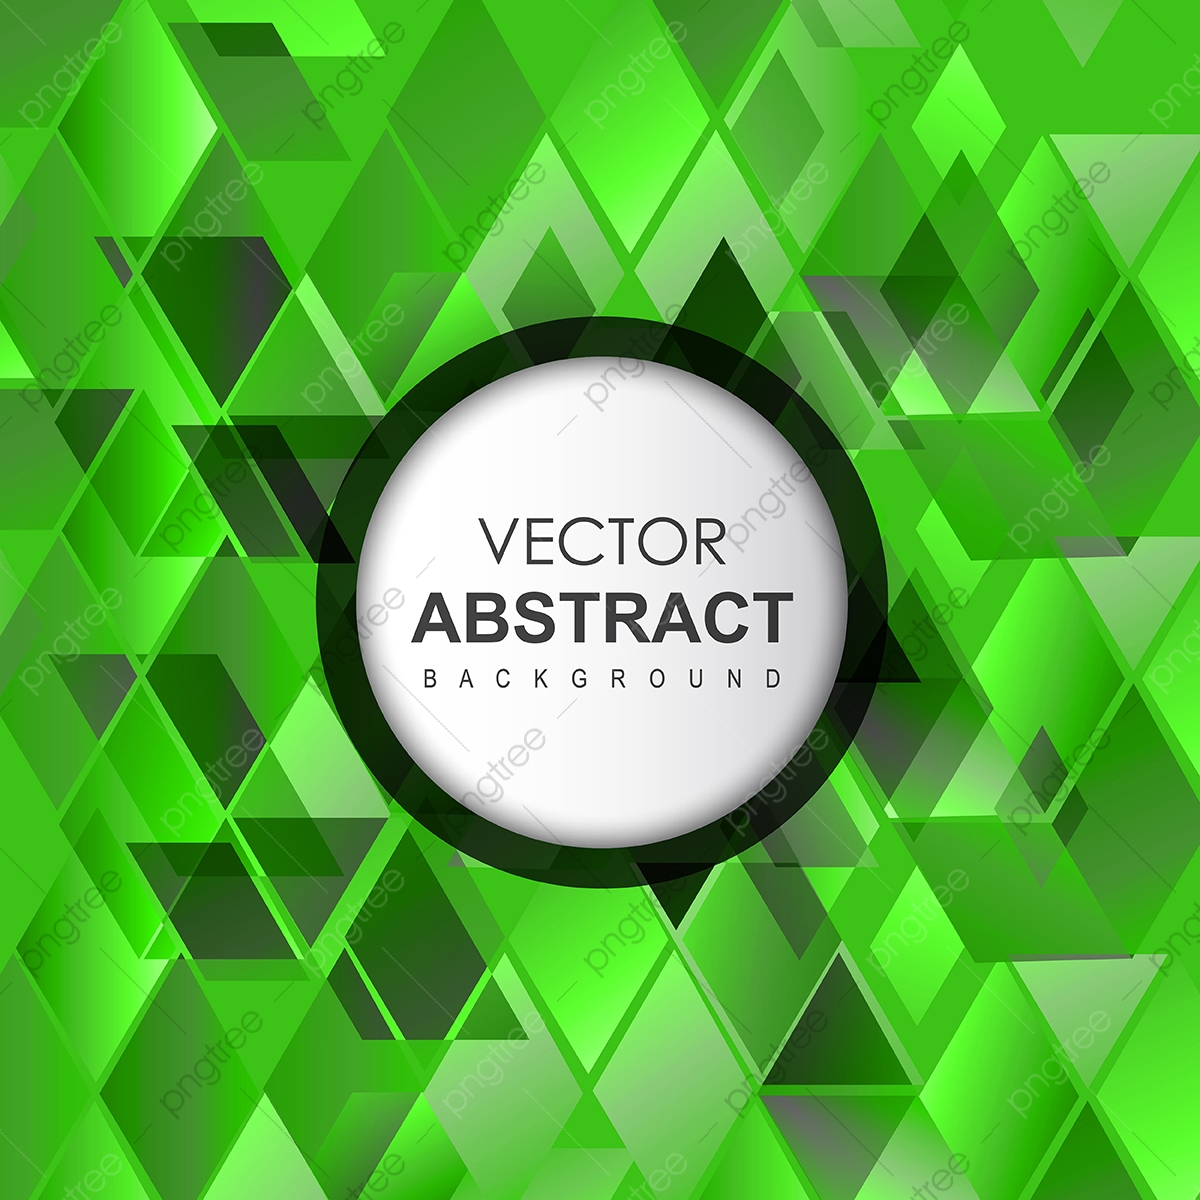 Title Green Vector Abstract Background справочная